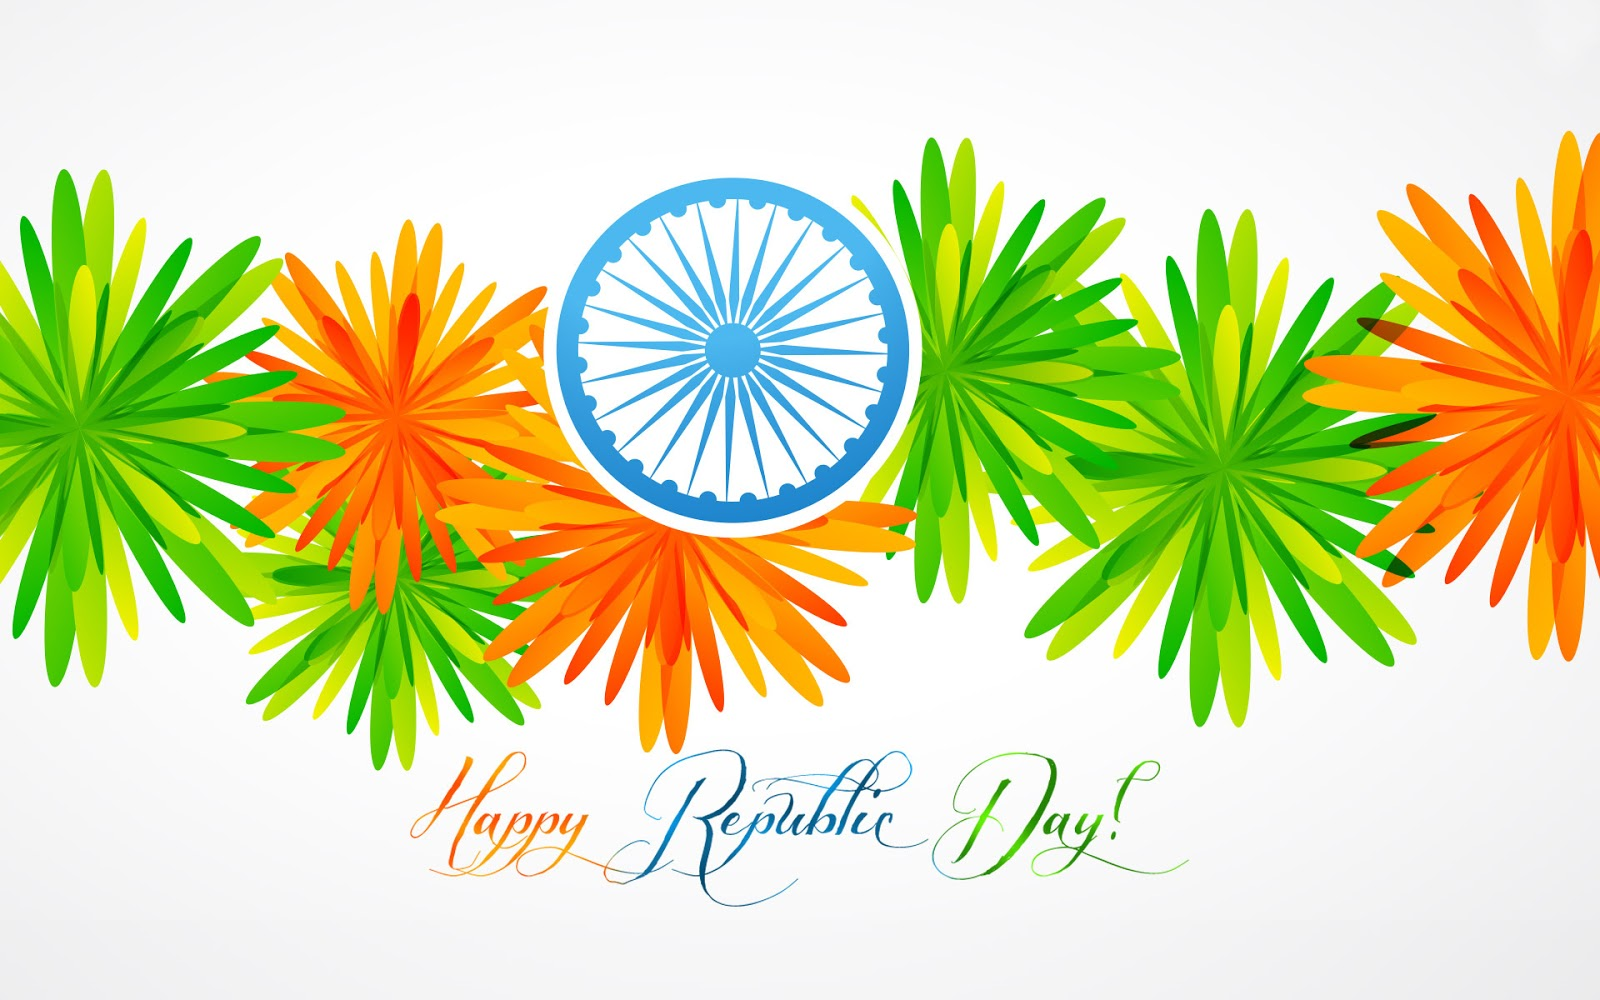 greeting images republic day